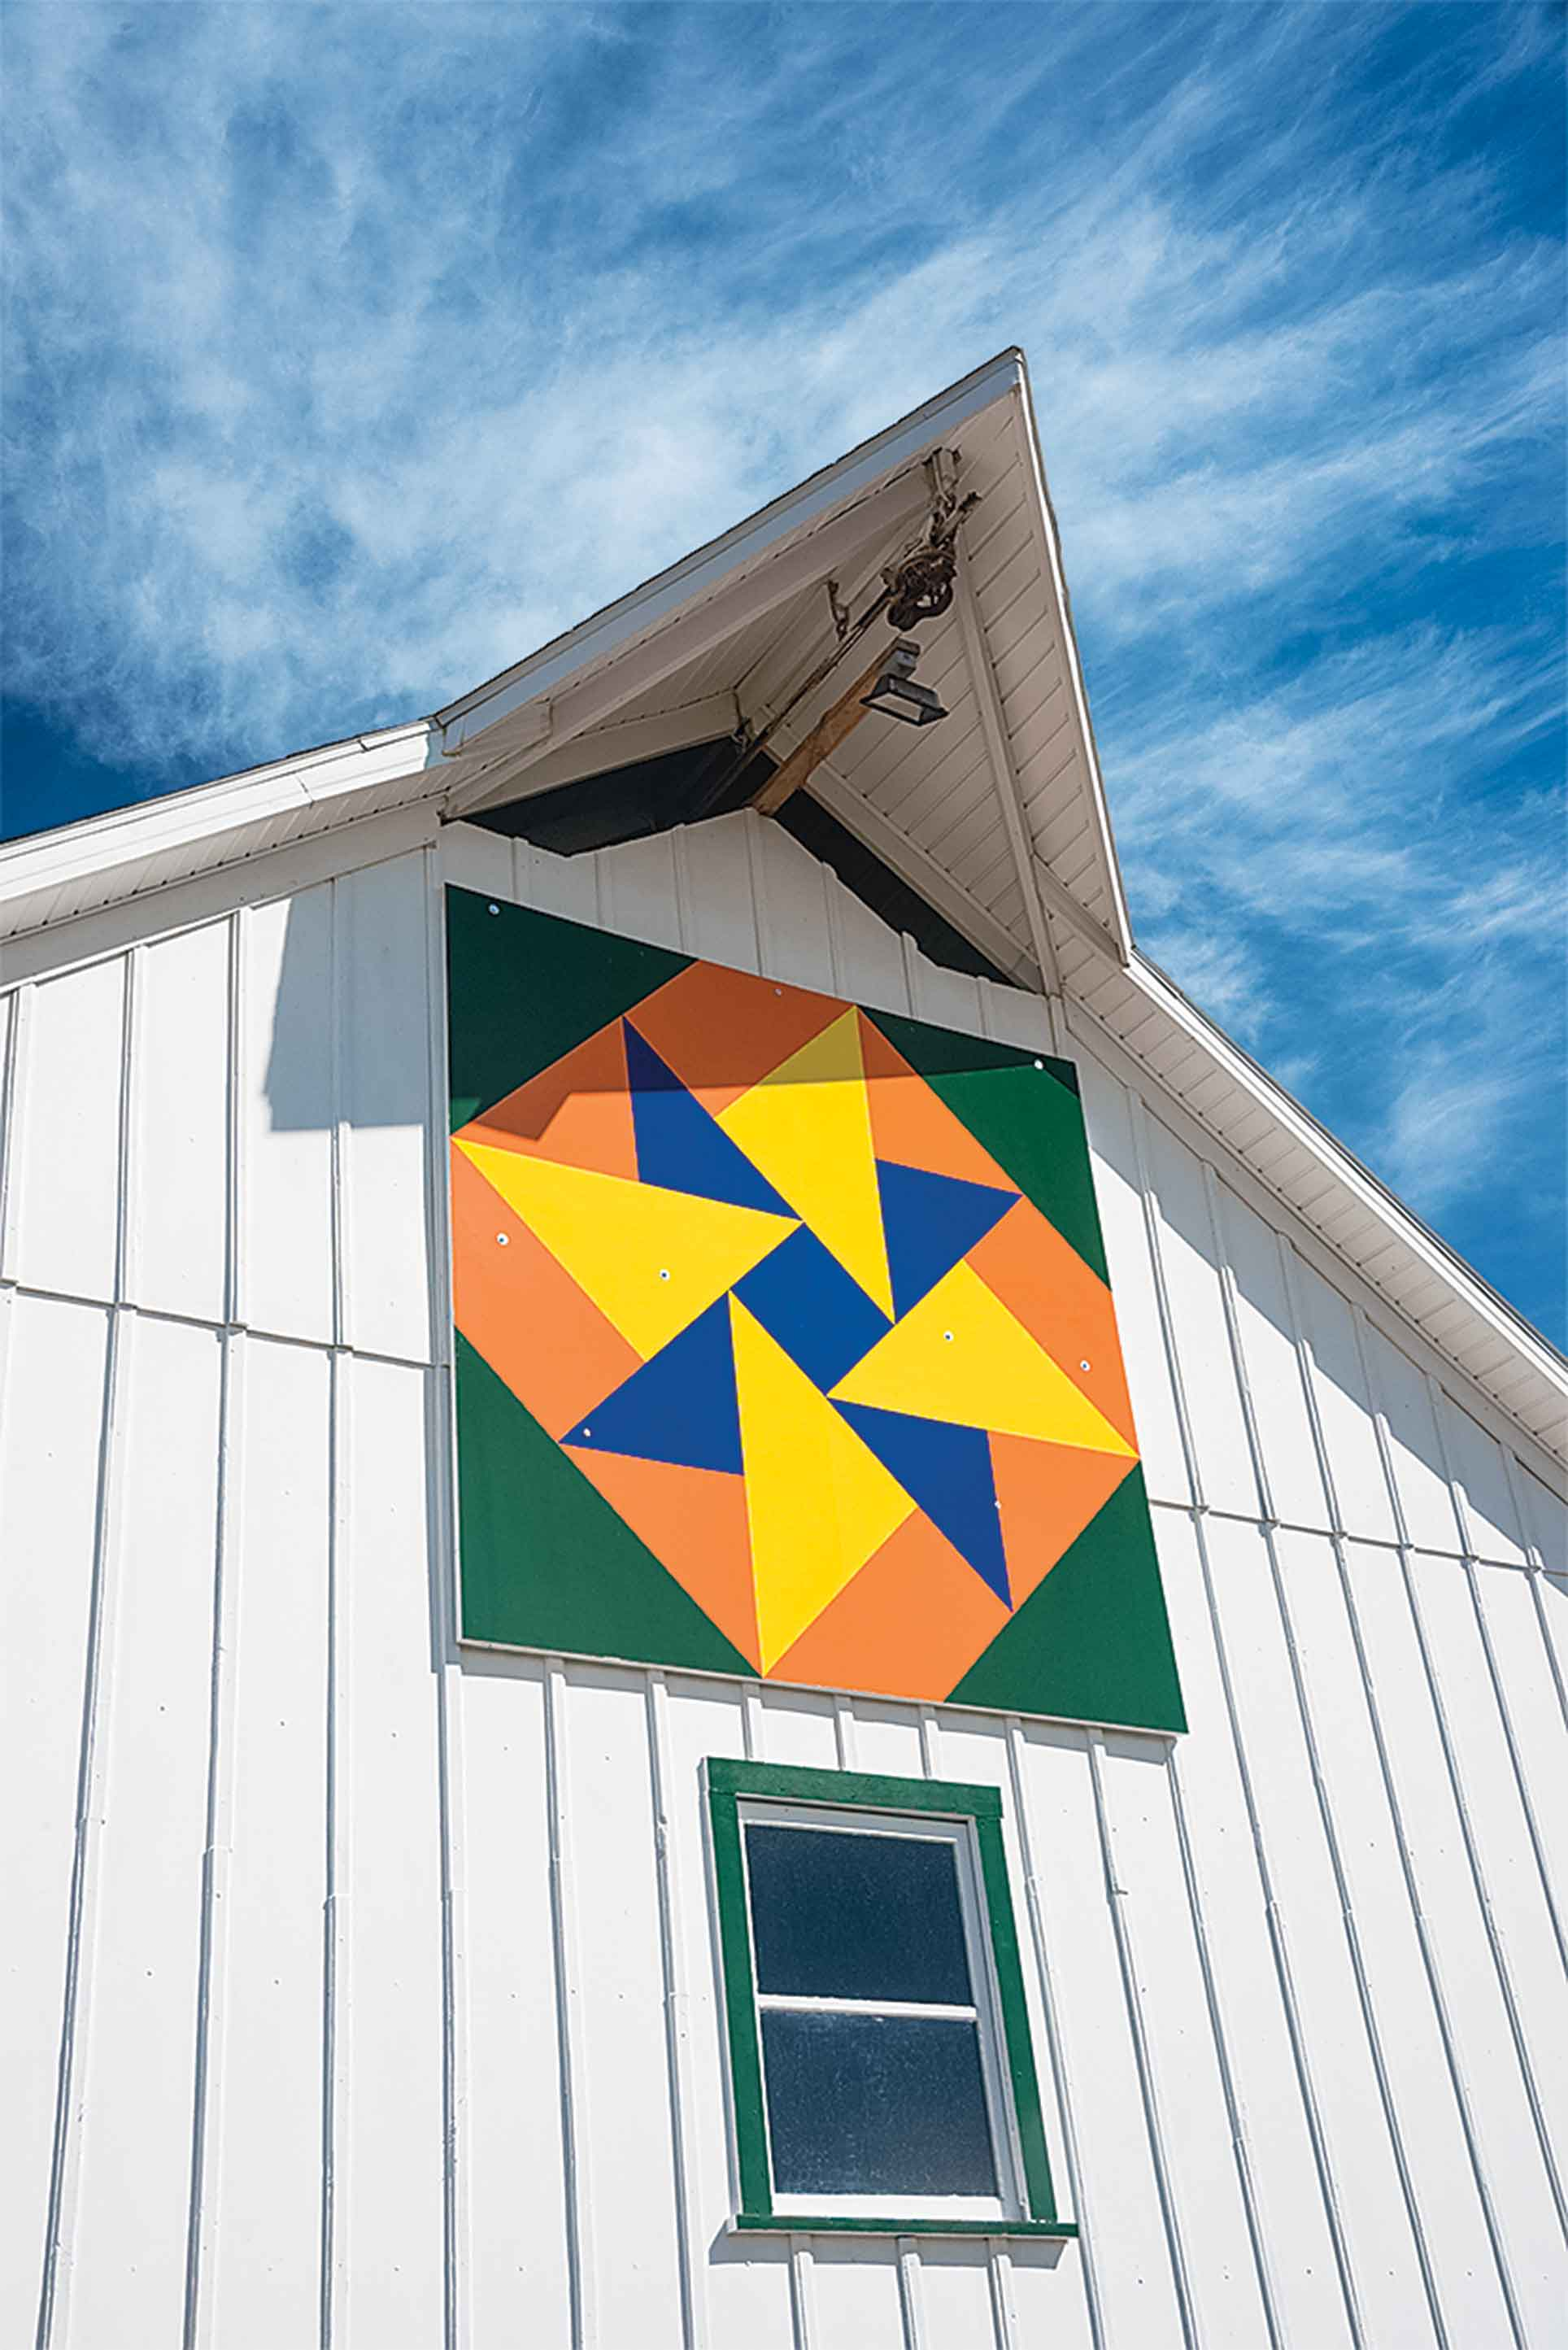 The Barn Quilt Craze